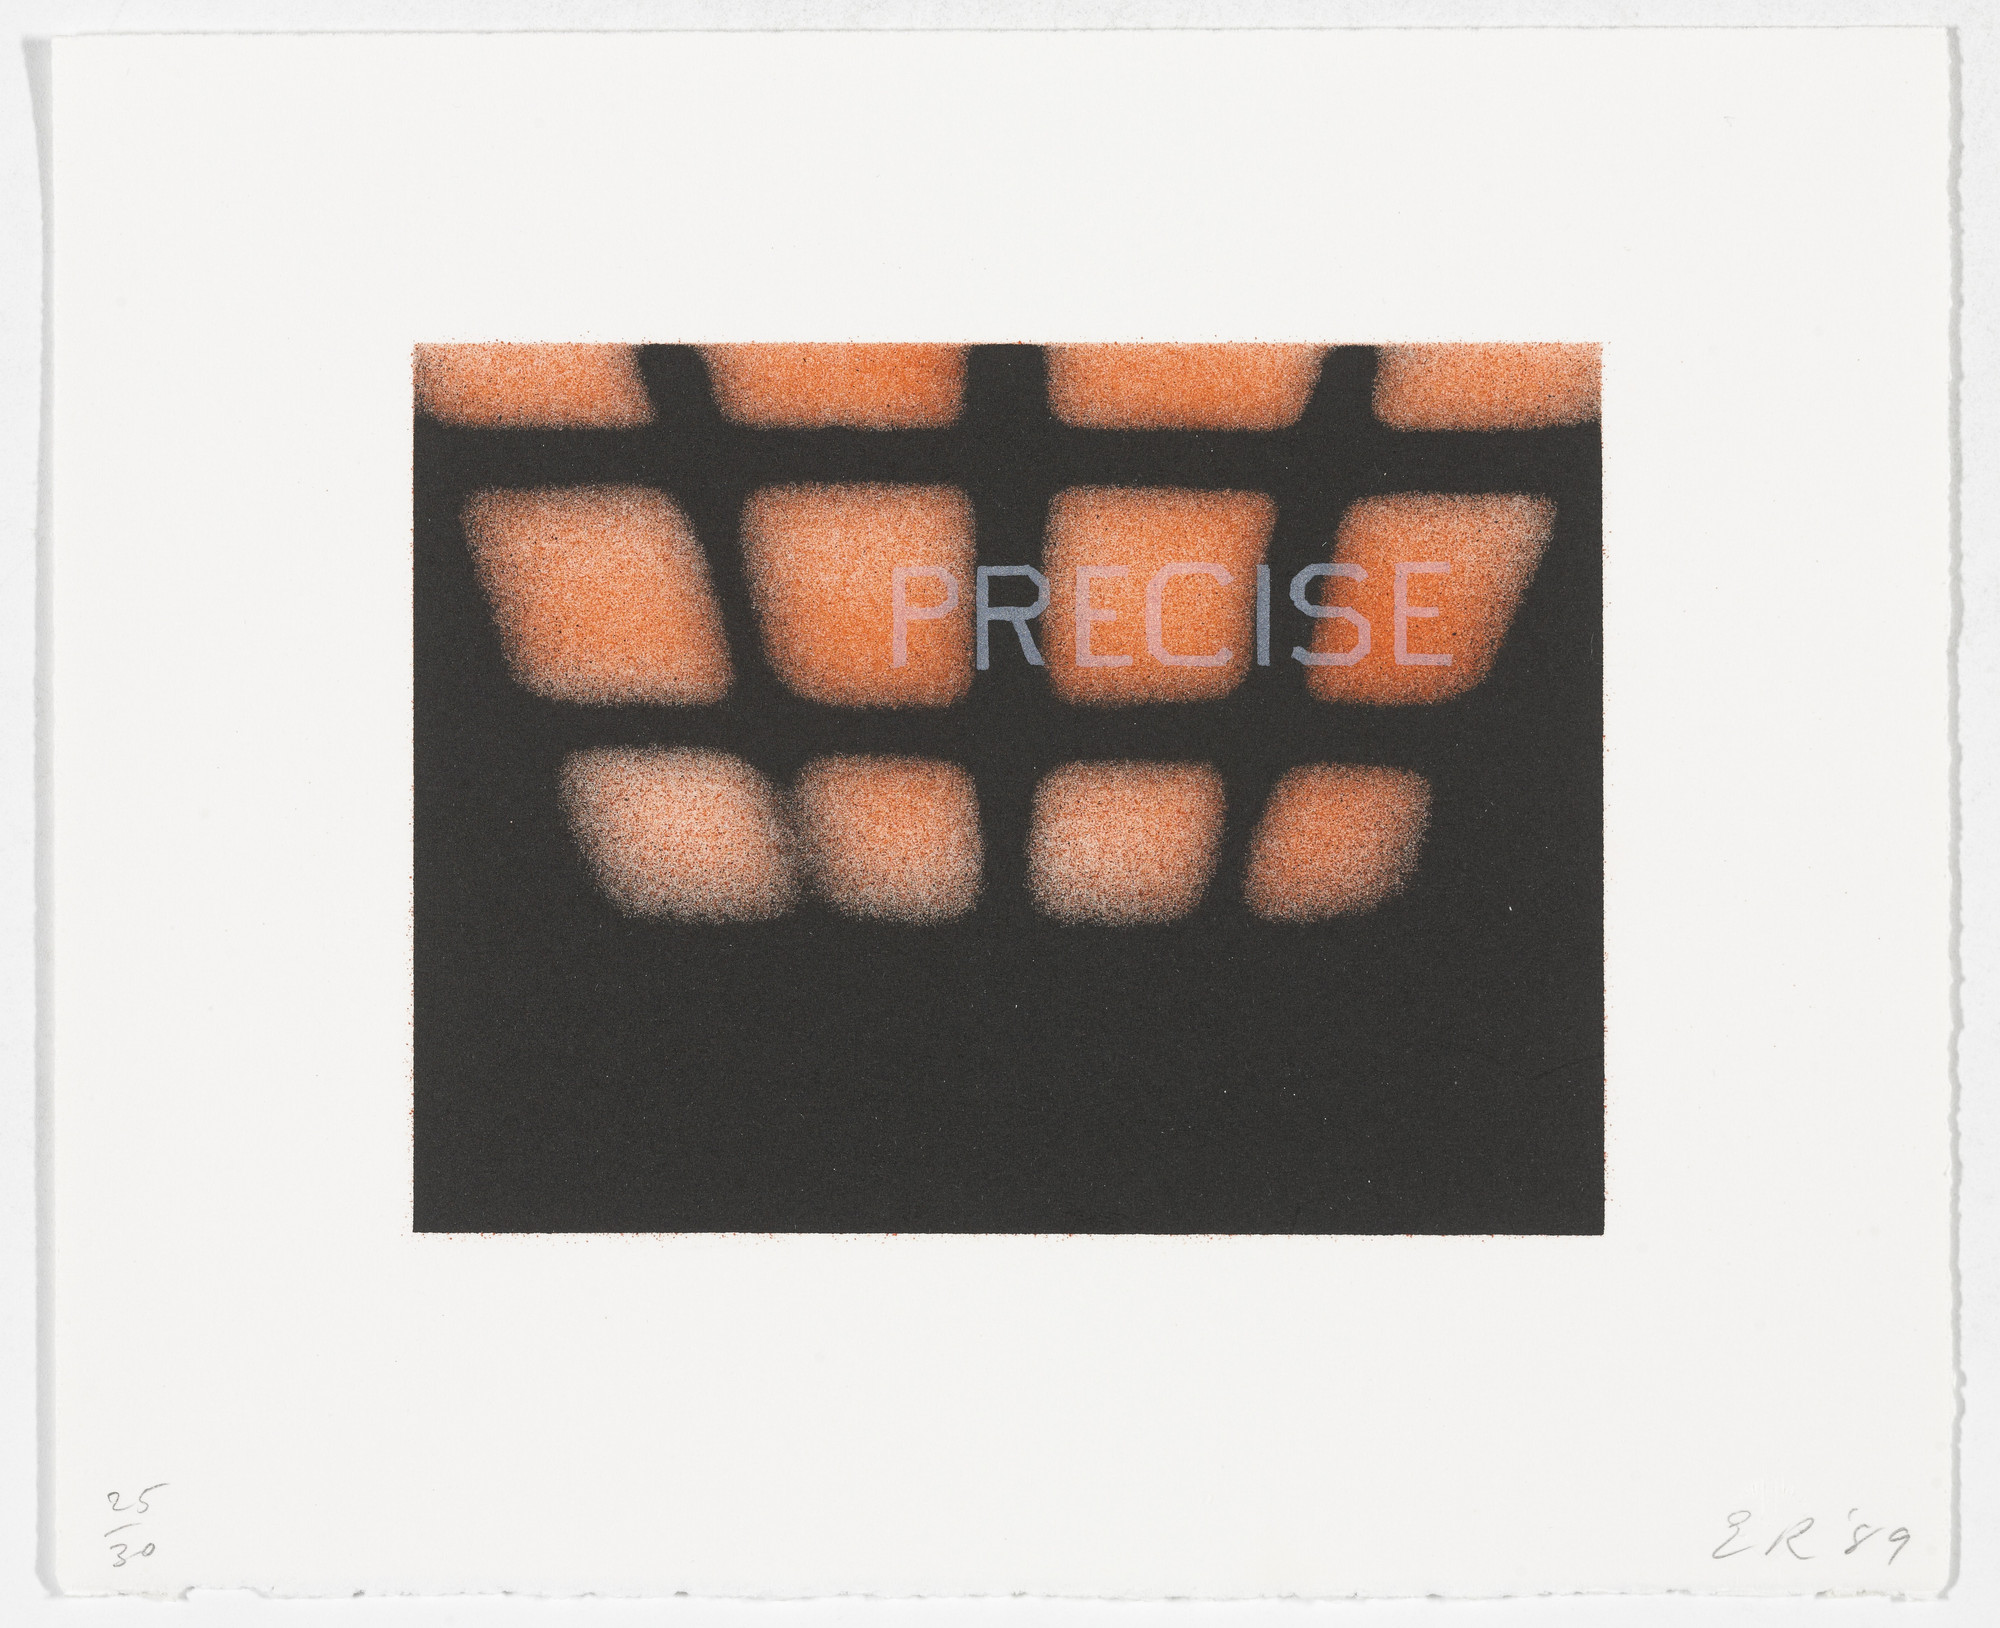 Edward Ruscha. Precise from That Is Right And Other Similarities. 1989